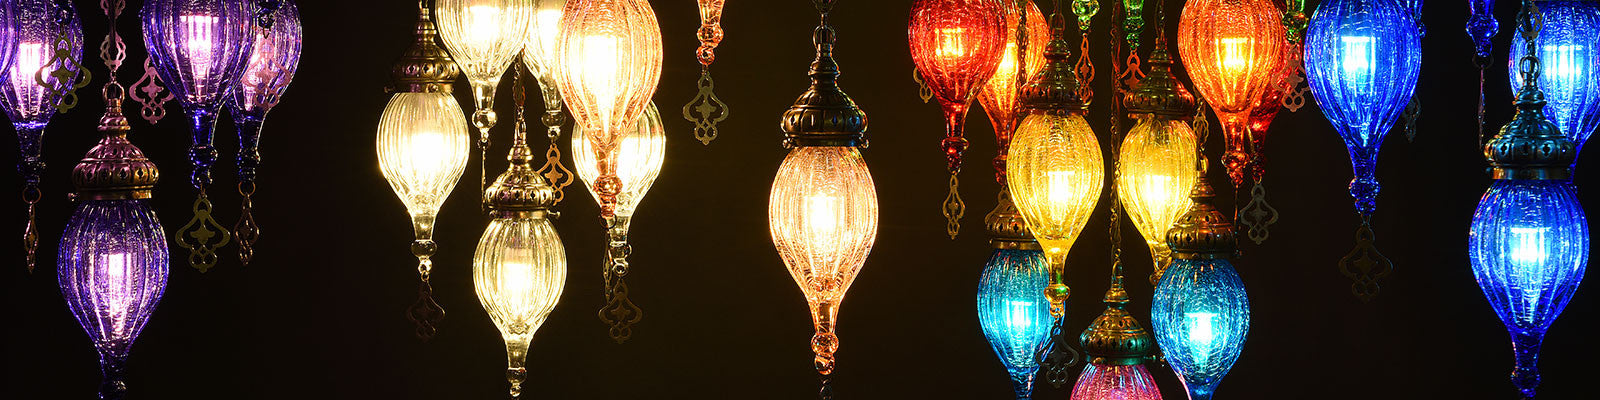 Turkish Chandeliers and Lamps